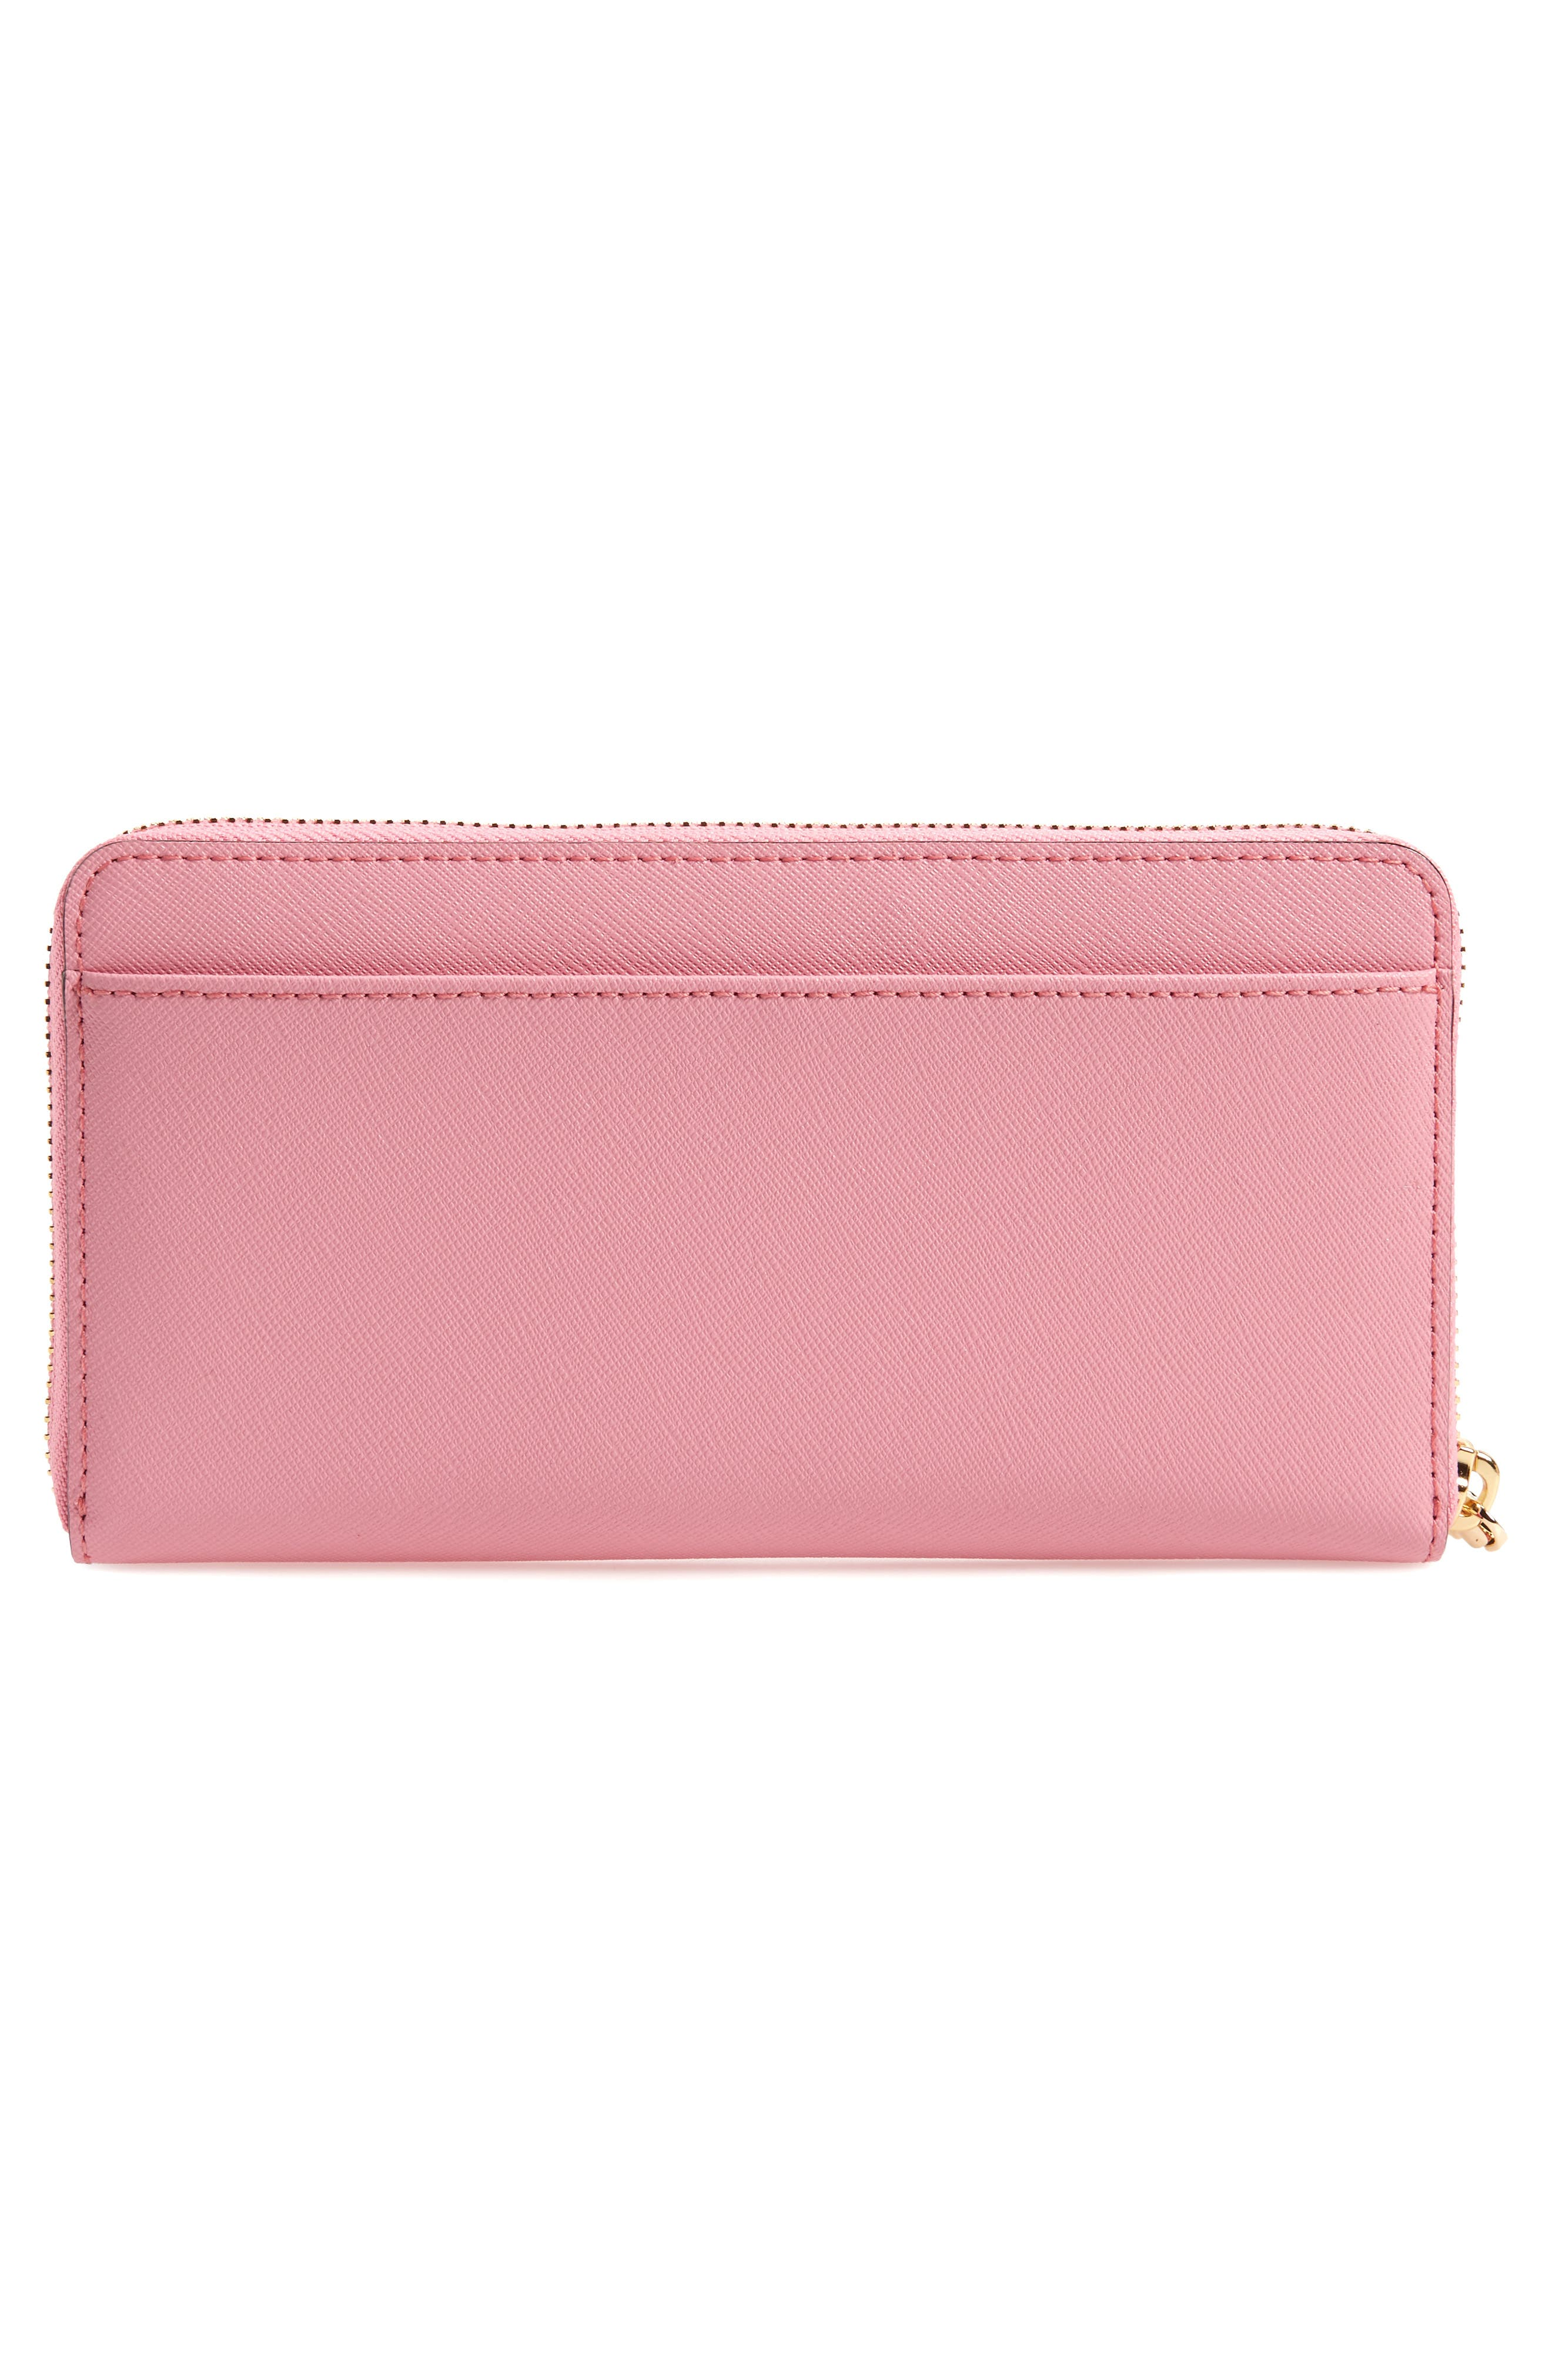 'cameron street - lacey' leather wallet,                             Alternate thumbnail 46, color,